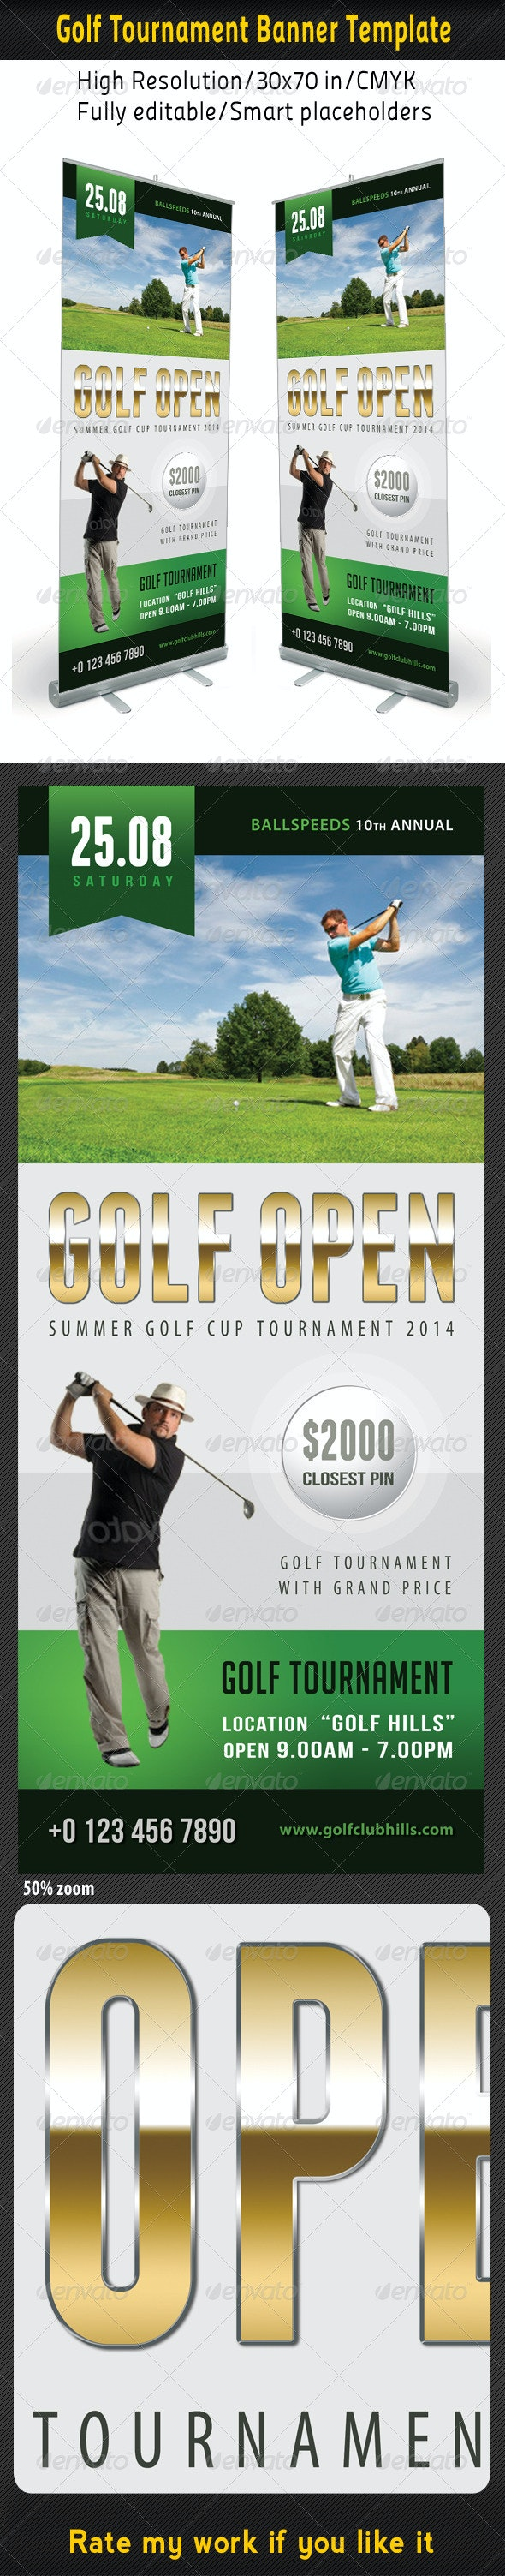 Golf Event Banner Template 03 - Signage Print Templates